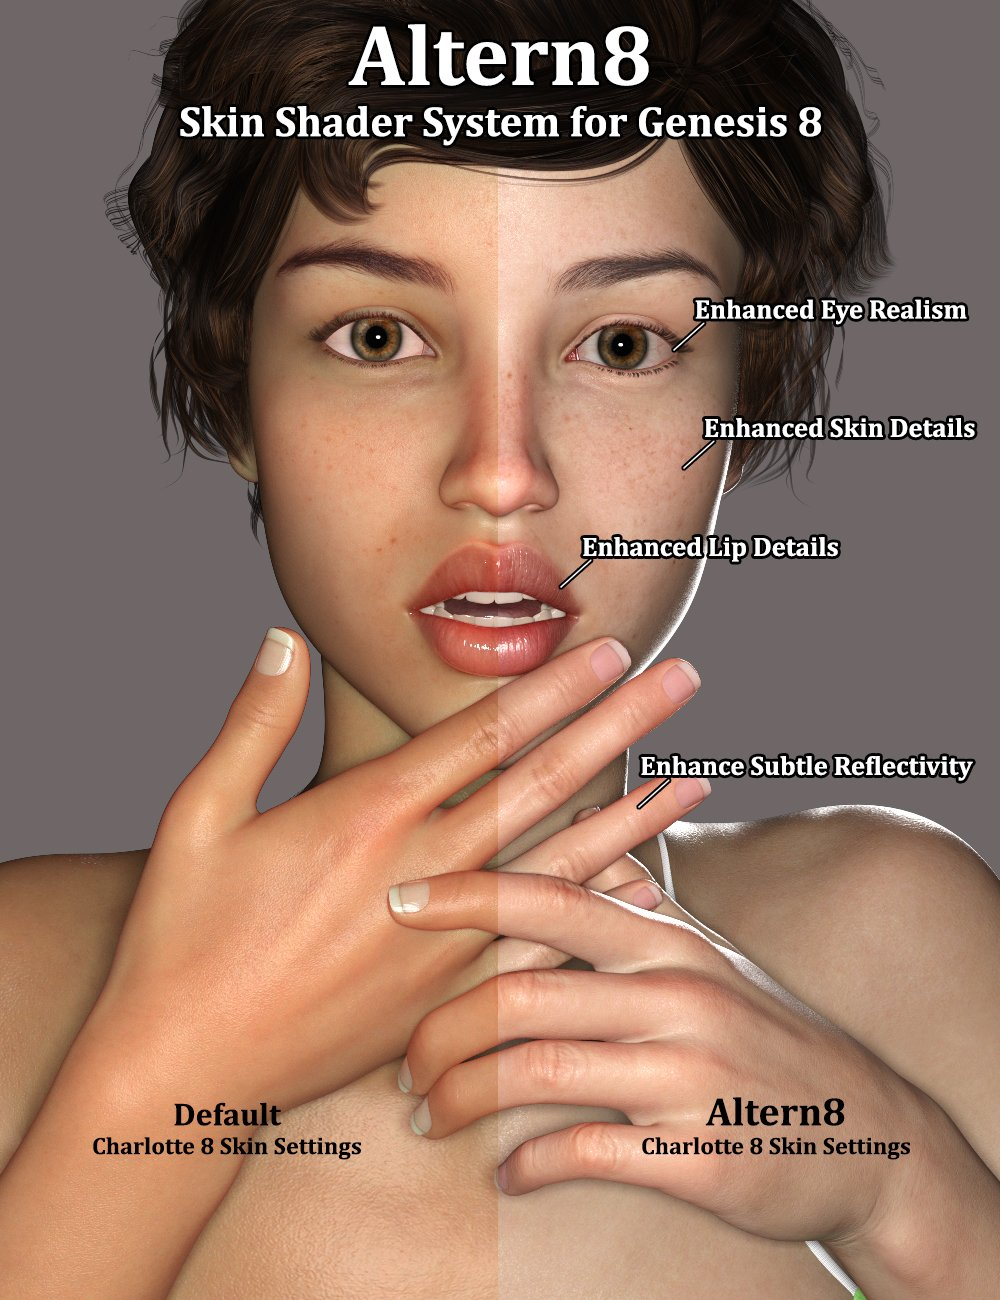 Altern8 - Skin Shader System for Genesis 8 by: 3Diva, 3D Models by Daz 3D